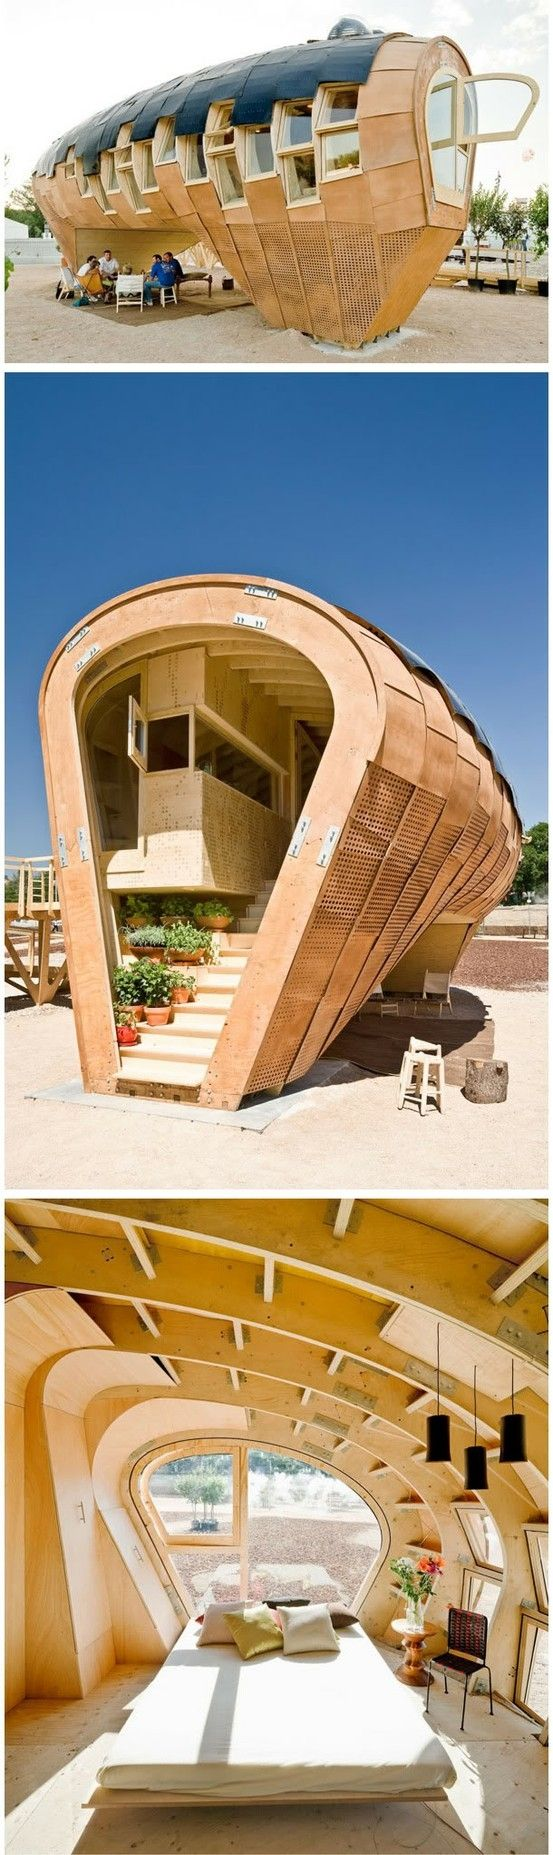 Fab Lab House from Institute of Advanced Architecture of Catalonia http://www.iaac.net/ eco-friendly house generates 3x more energy than it by kristine